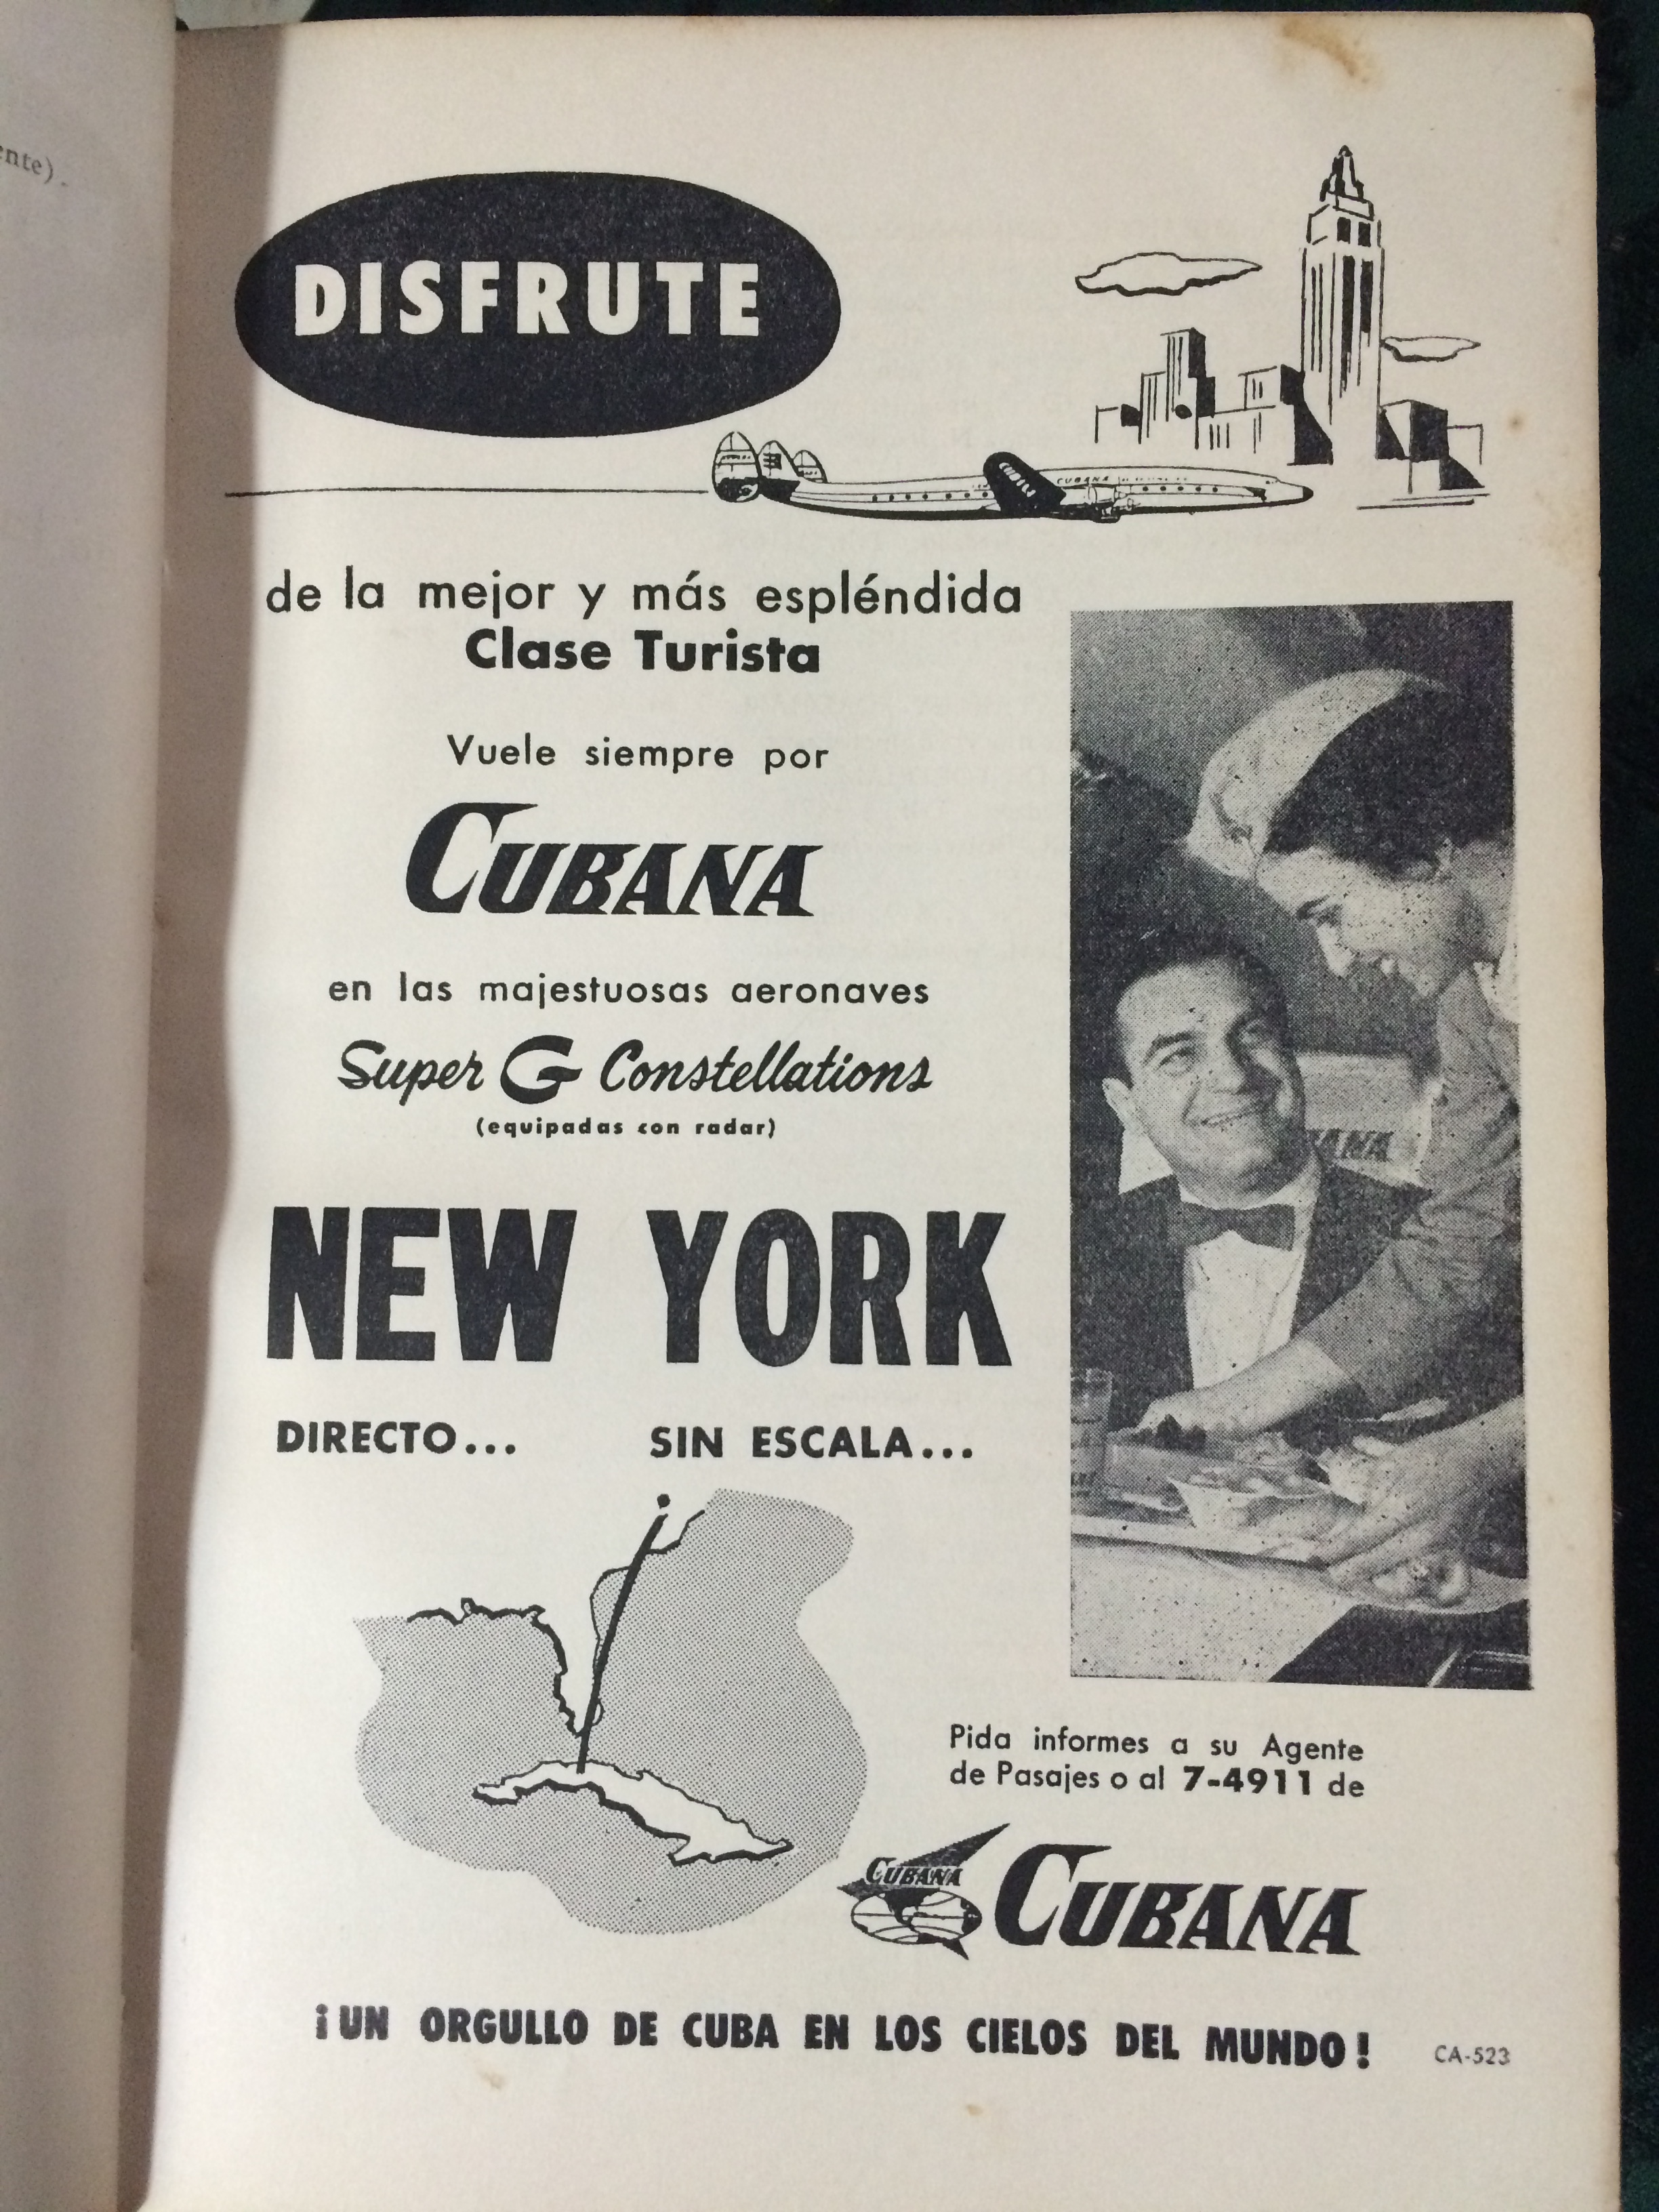 An advertisement for flights between New York and Havana from the 1950s, found in the pages of a Havana Social Registry at a local friend's home.